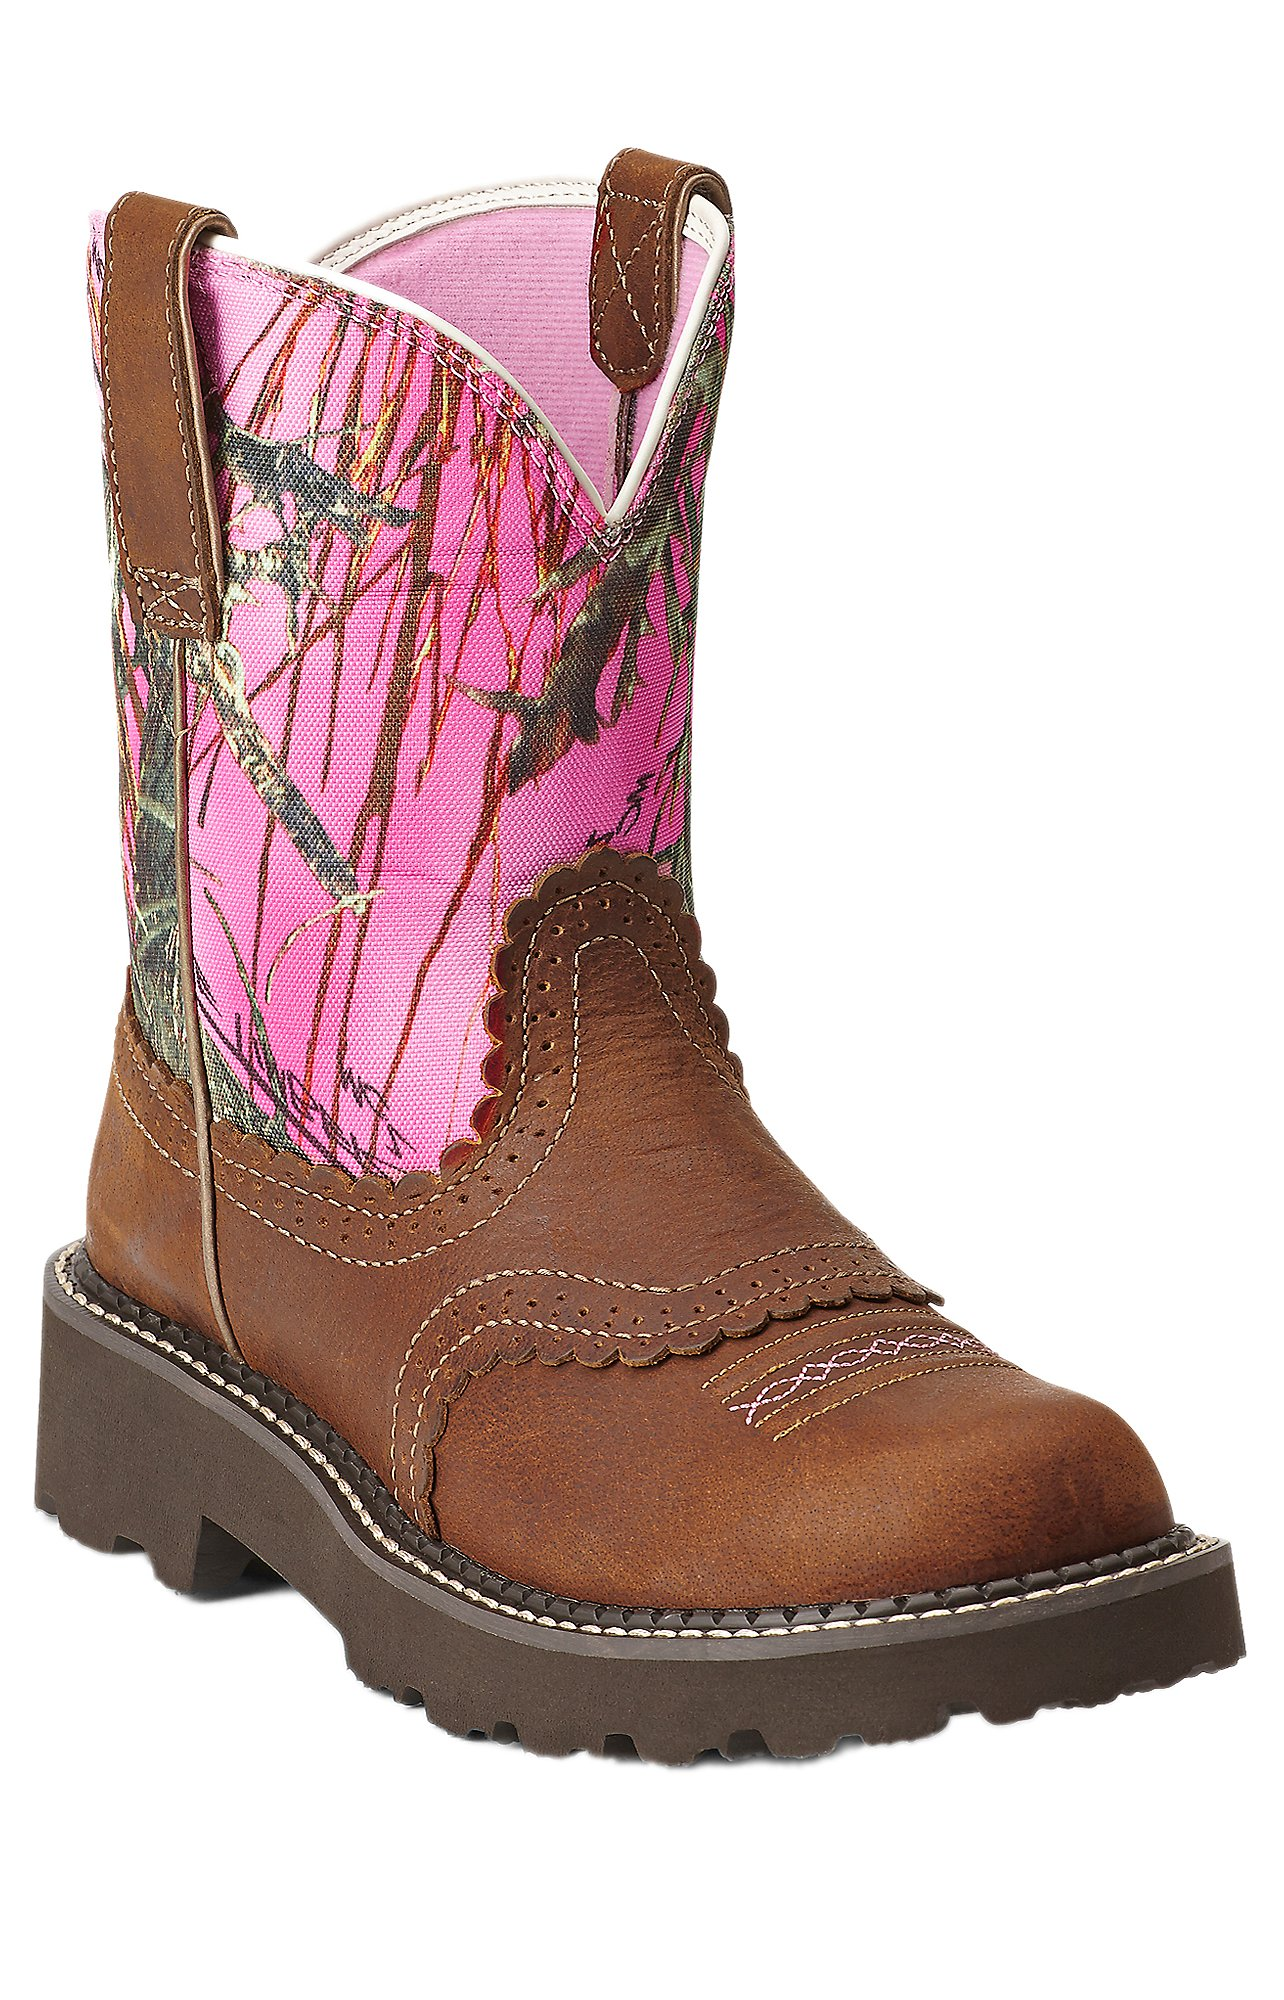 Ariat Fatbaby Women's Tanned Copper with Pink Camo Top Boots ...